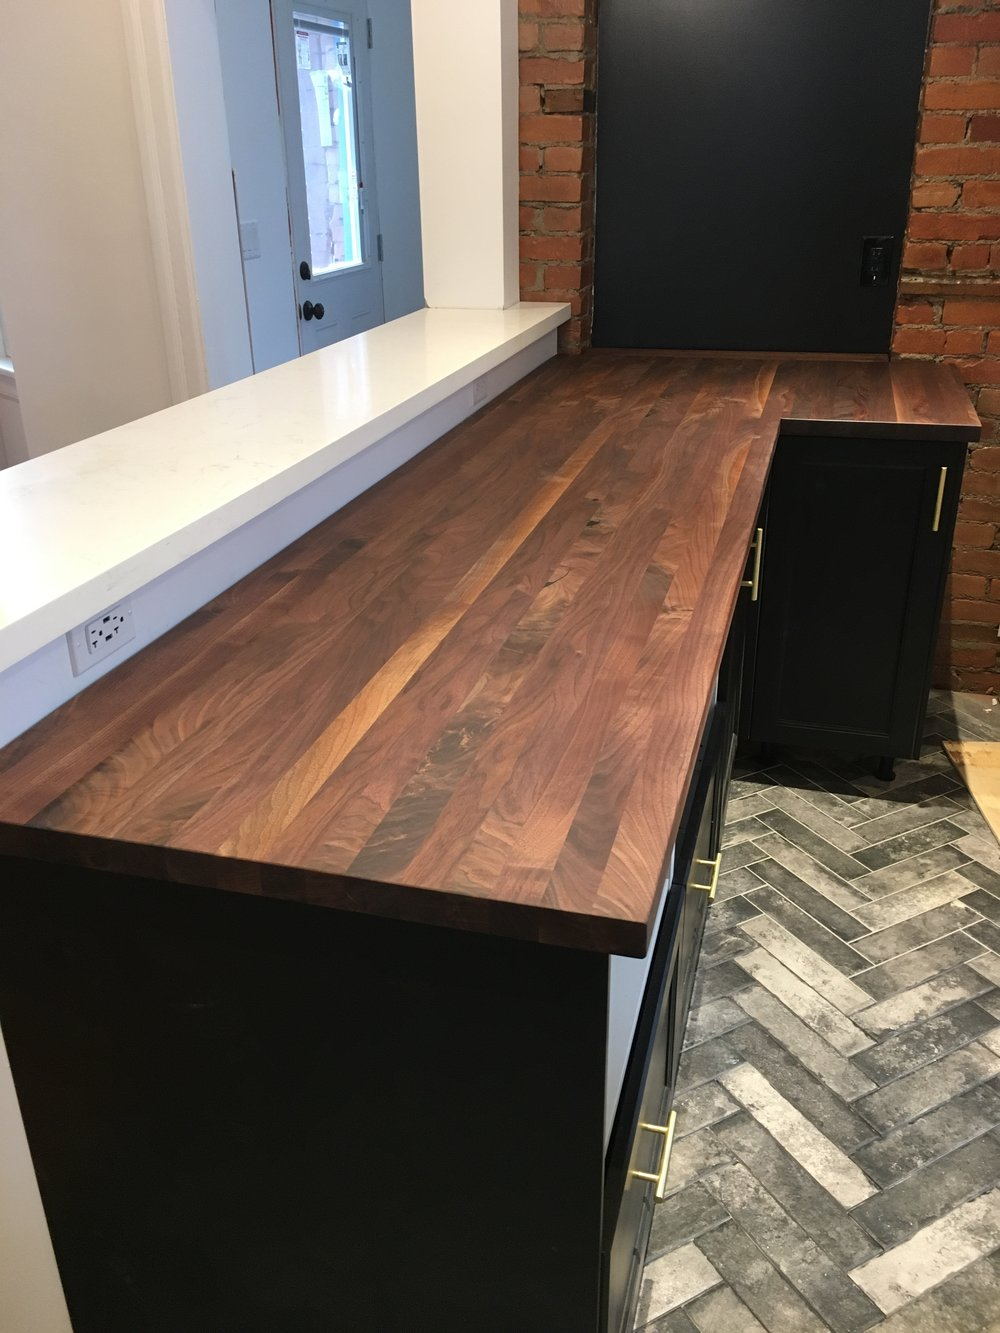 Walnut butcher block counter